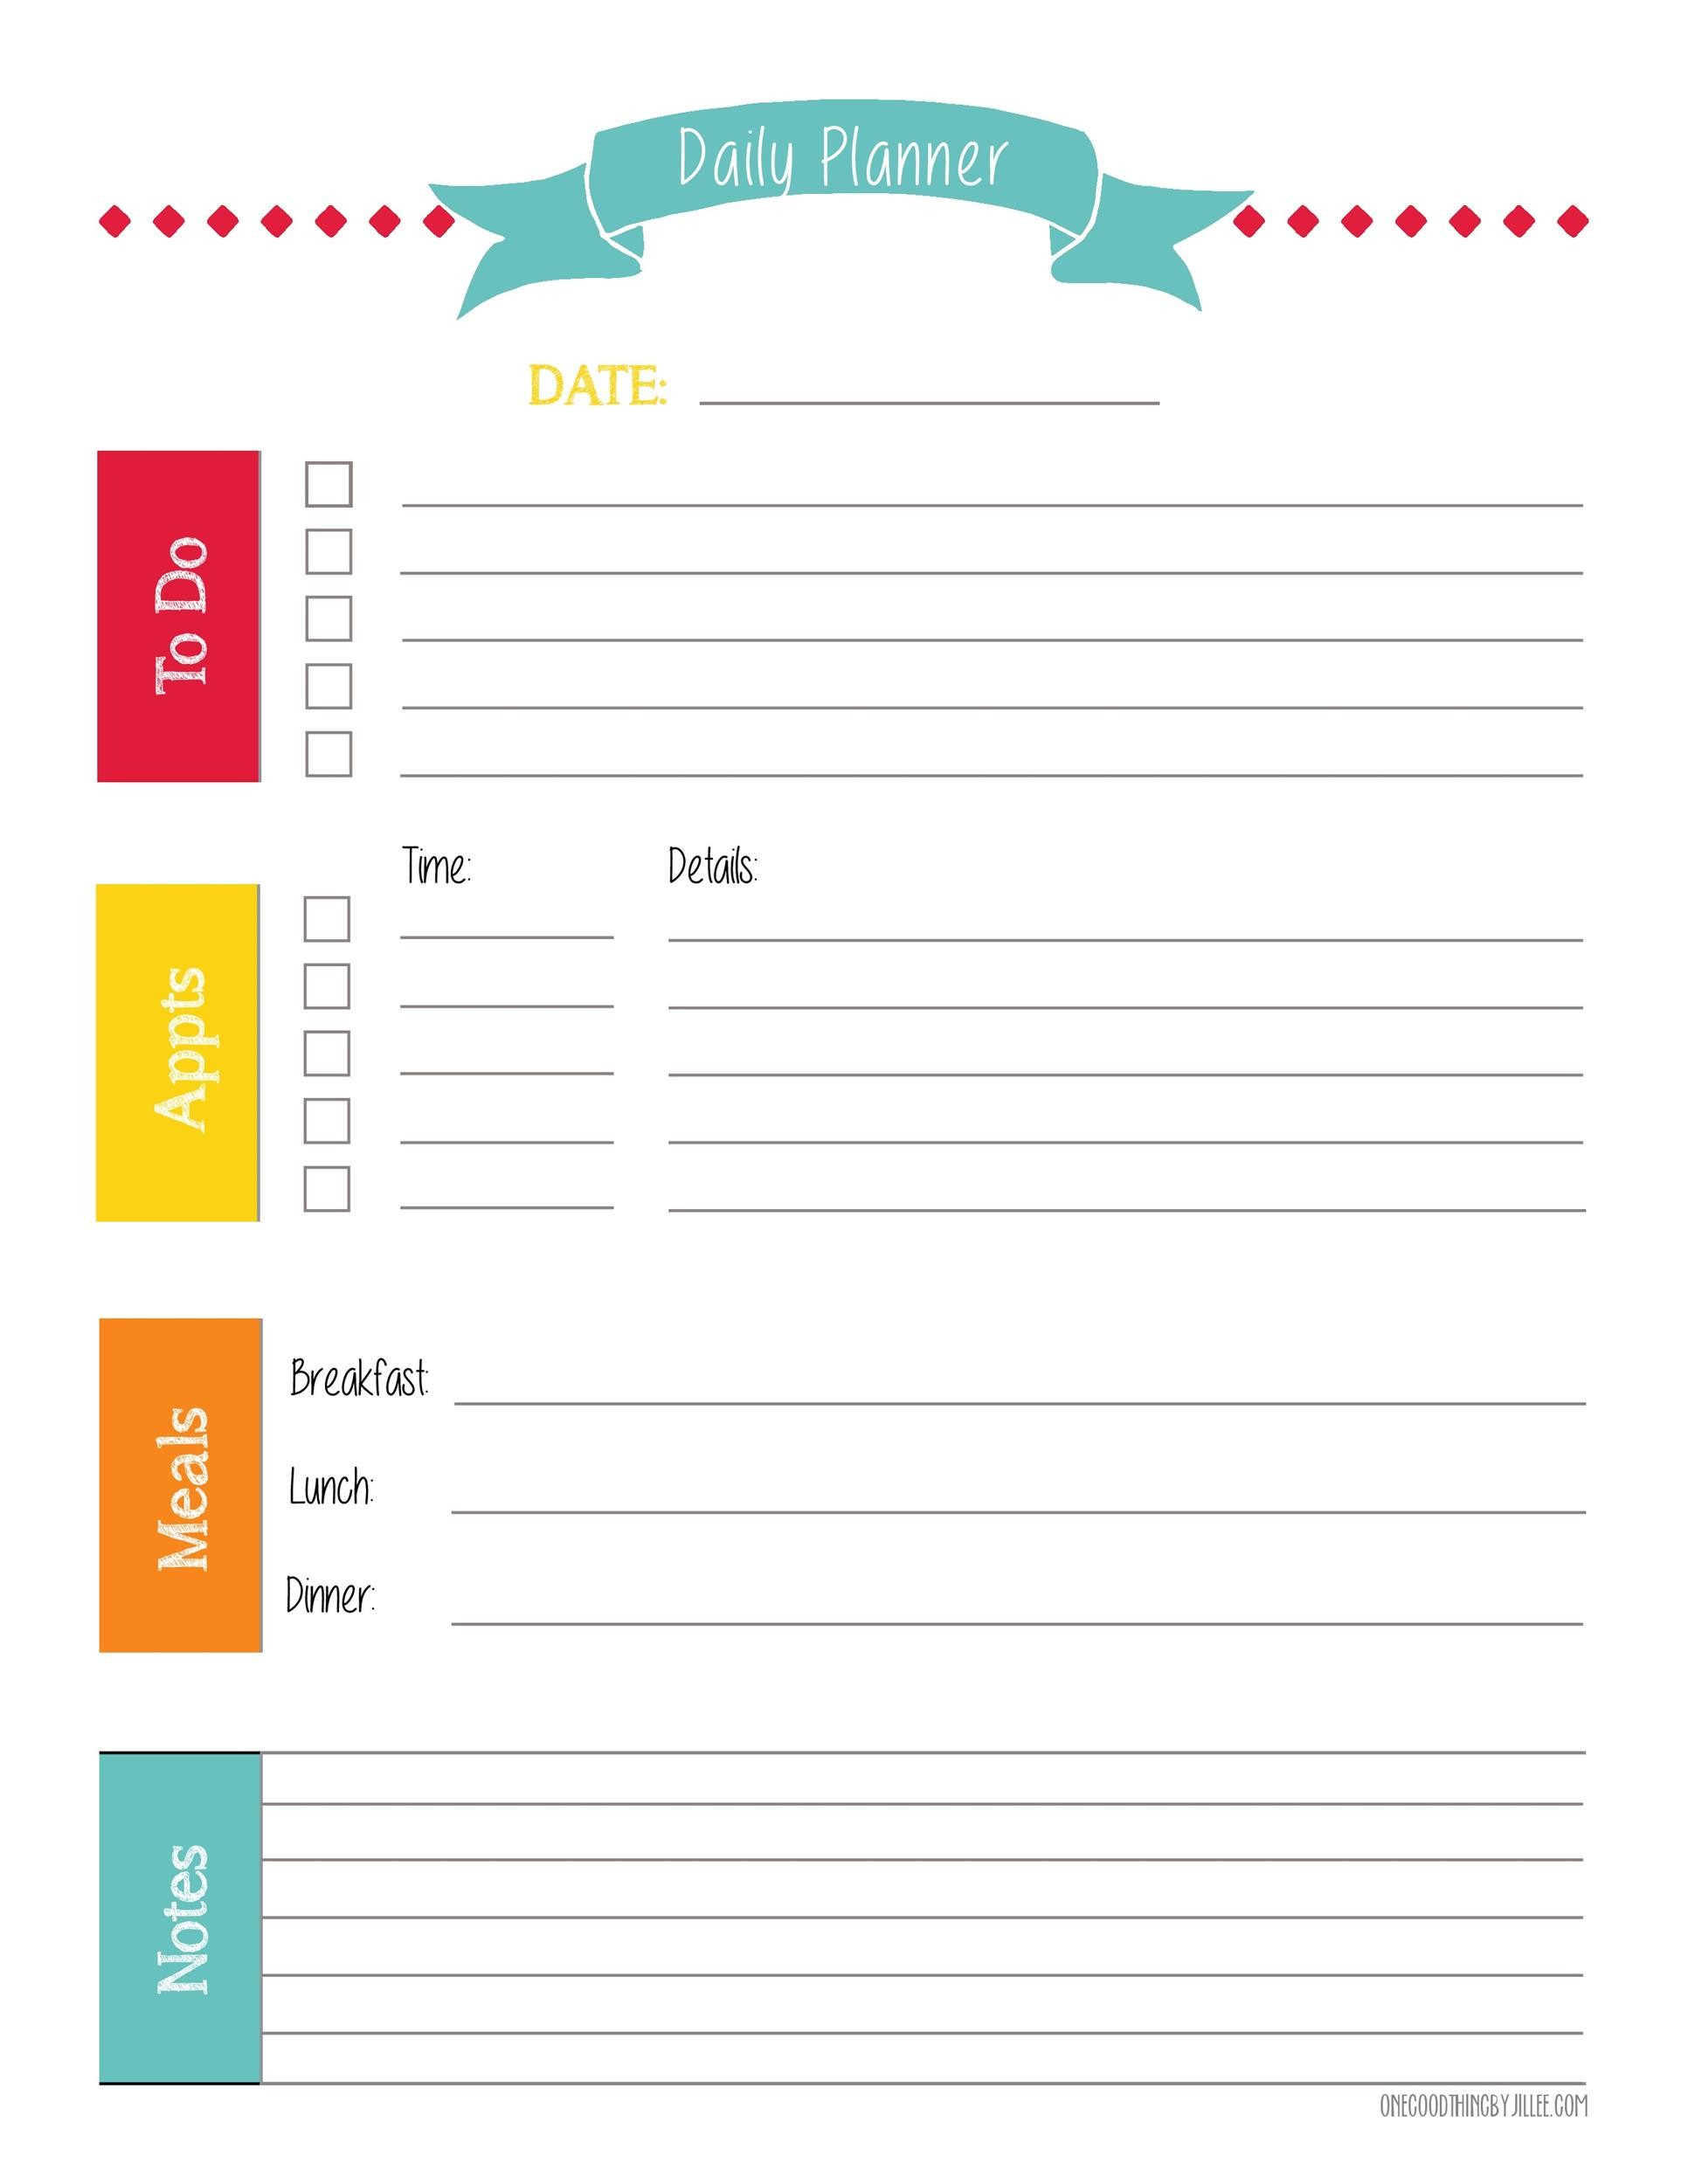 one day event schedule template - 40 printable daily planner templates free template lab